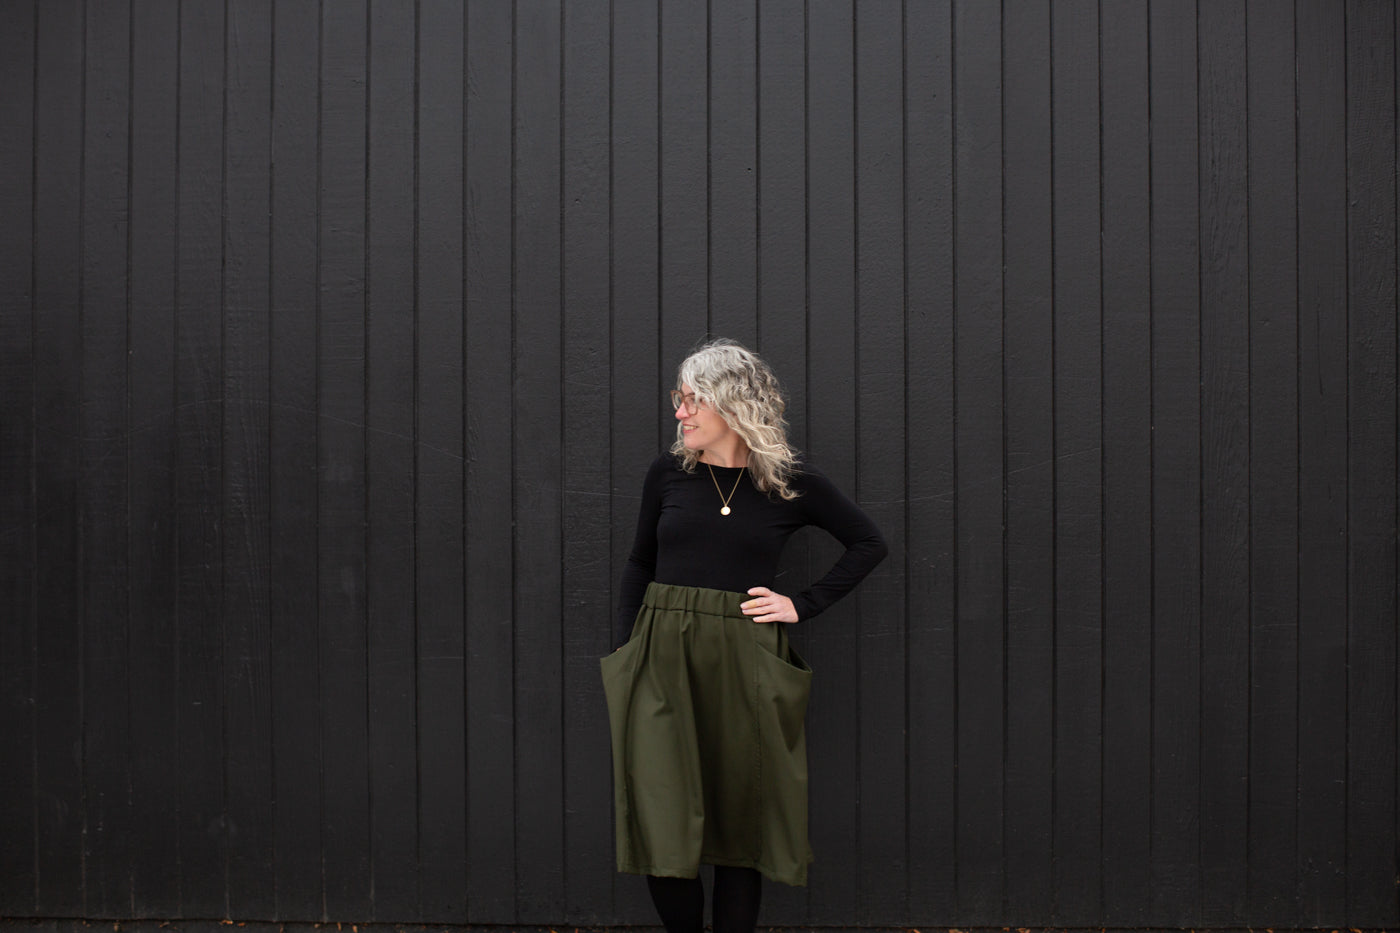 Jaime standing against a black wall in a black long sleeve and olive colored skirt with her hands in her pockets looking off to the right.